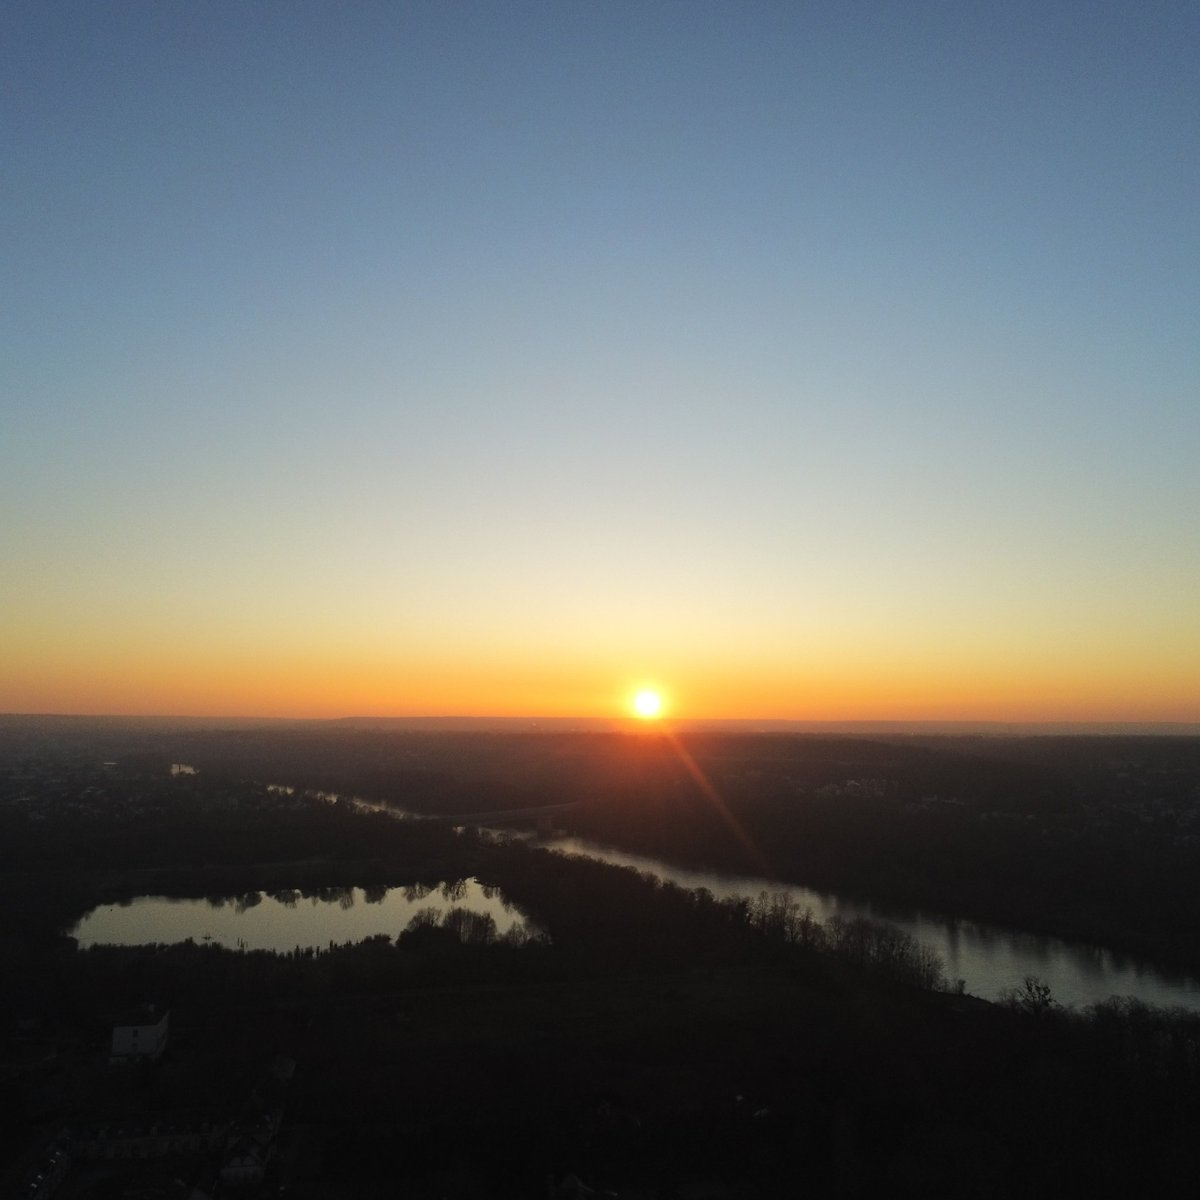 #picsoftheday #drone #amazing #nofilter #sunsetpic.twitter.com/eqHpV279T8